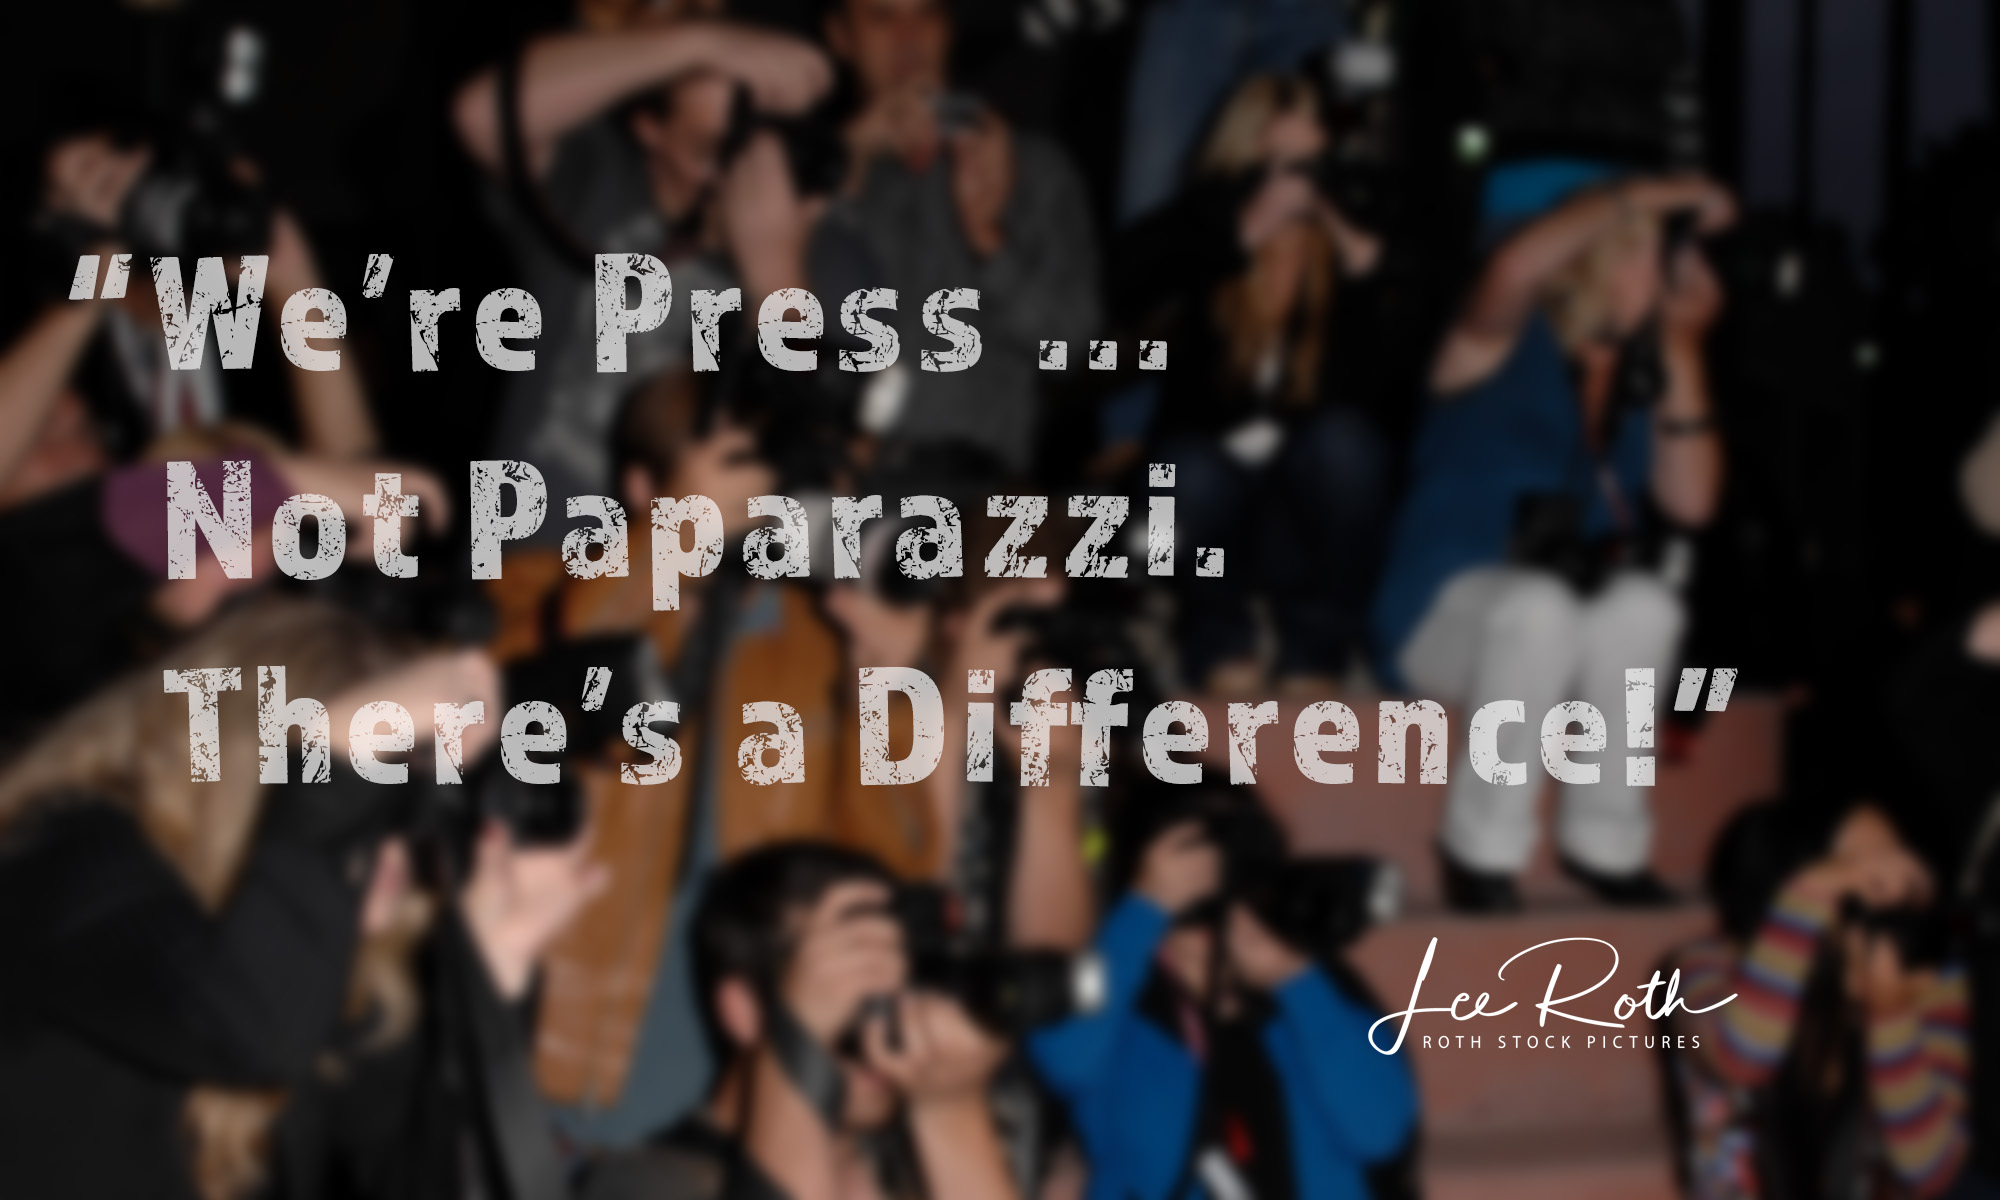 We're Press, Not Paparazzi. There's a Difference!